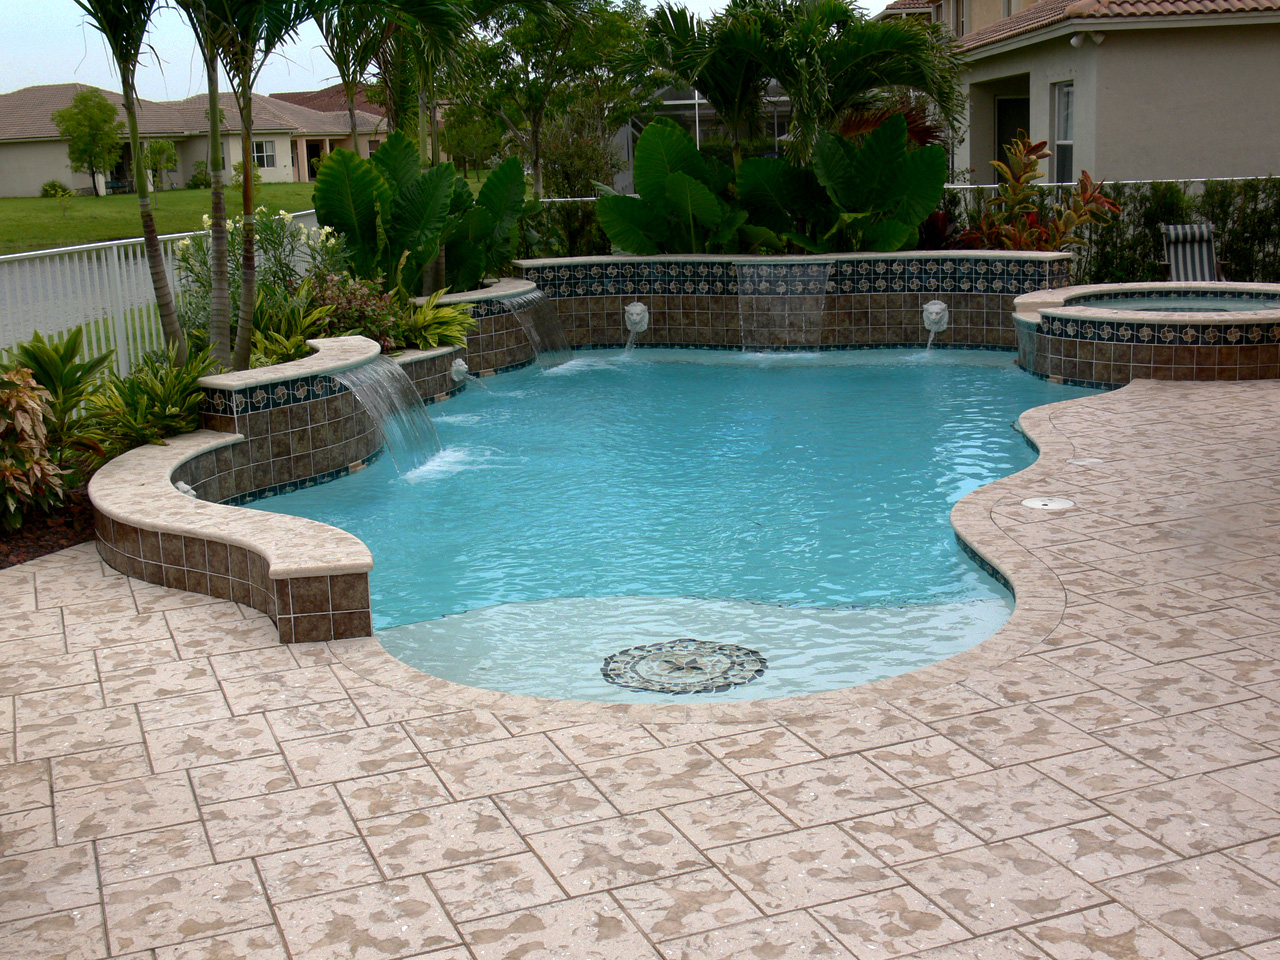 Pool Pictures Gallery : Ultimate pool remodeling swimming pavers gallery